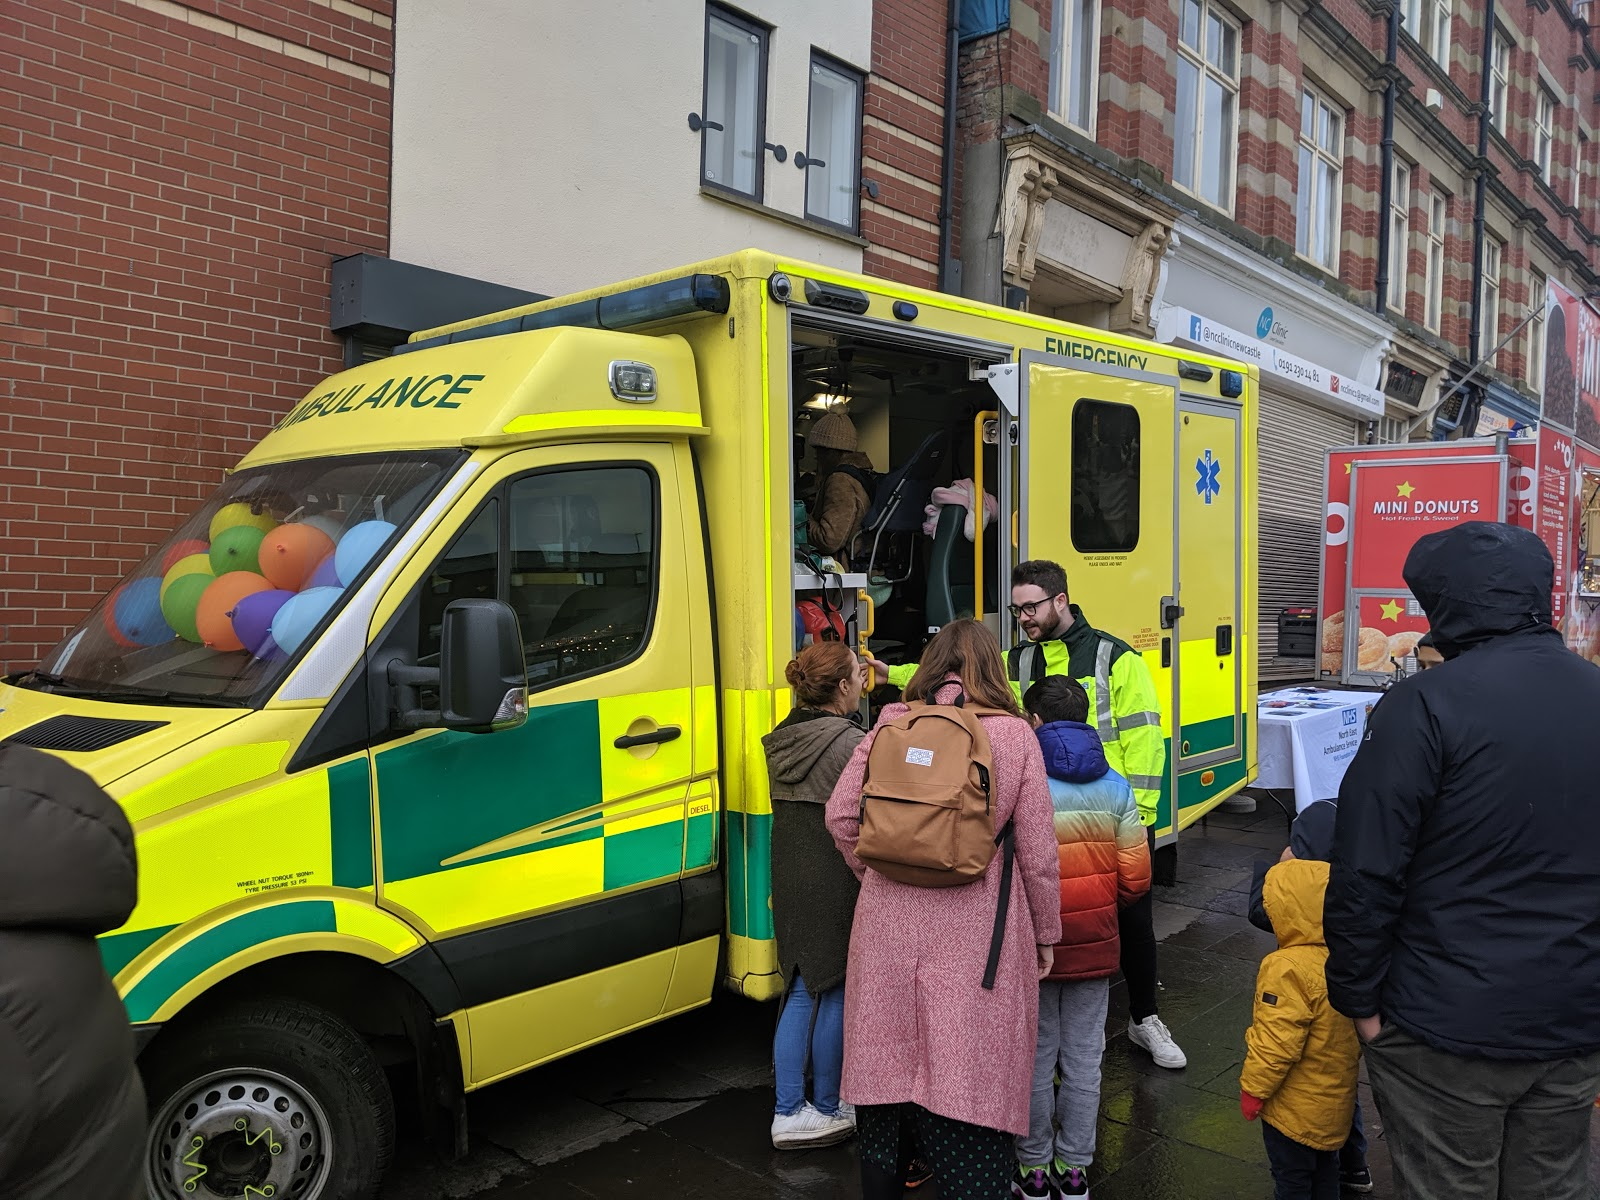 10 Reasons to Celebrate Chinese New Year in Newcastle  - ambulance